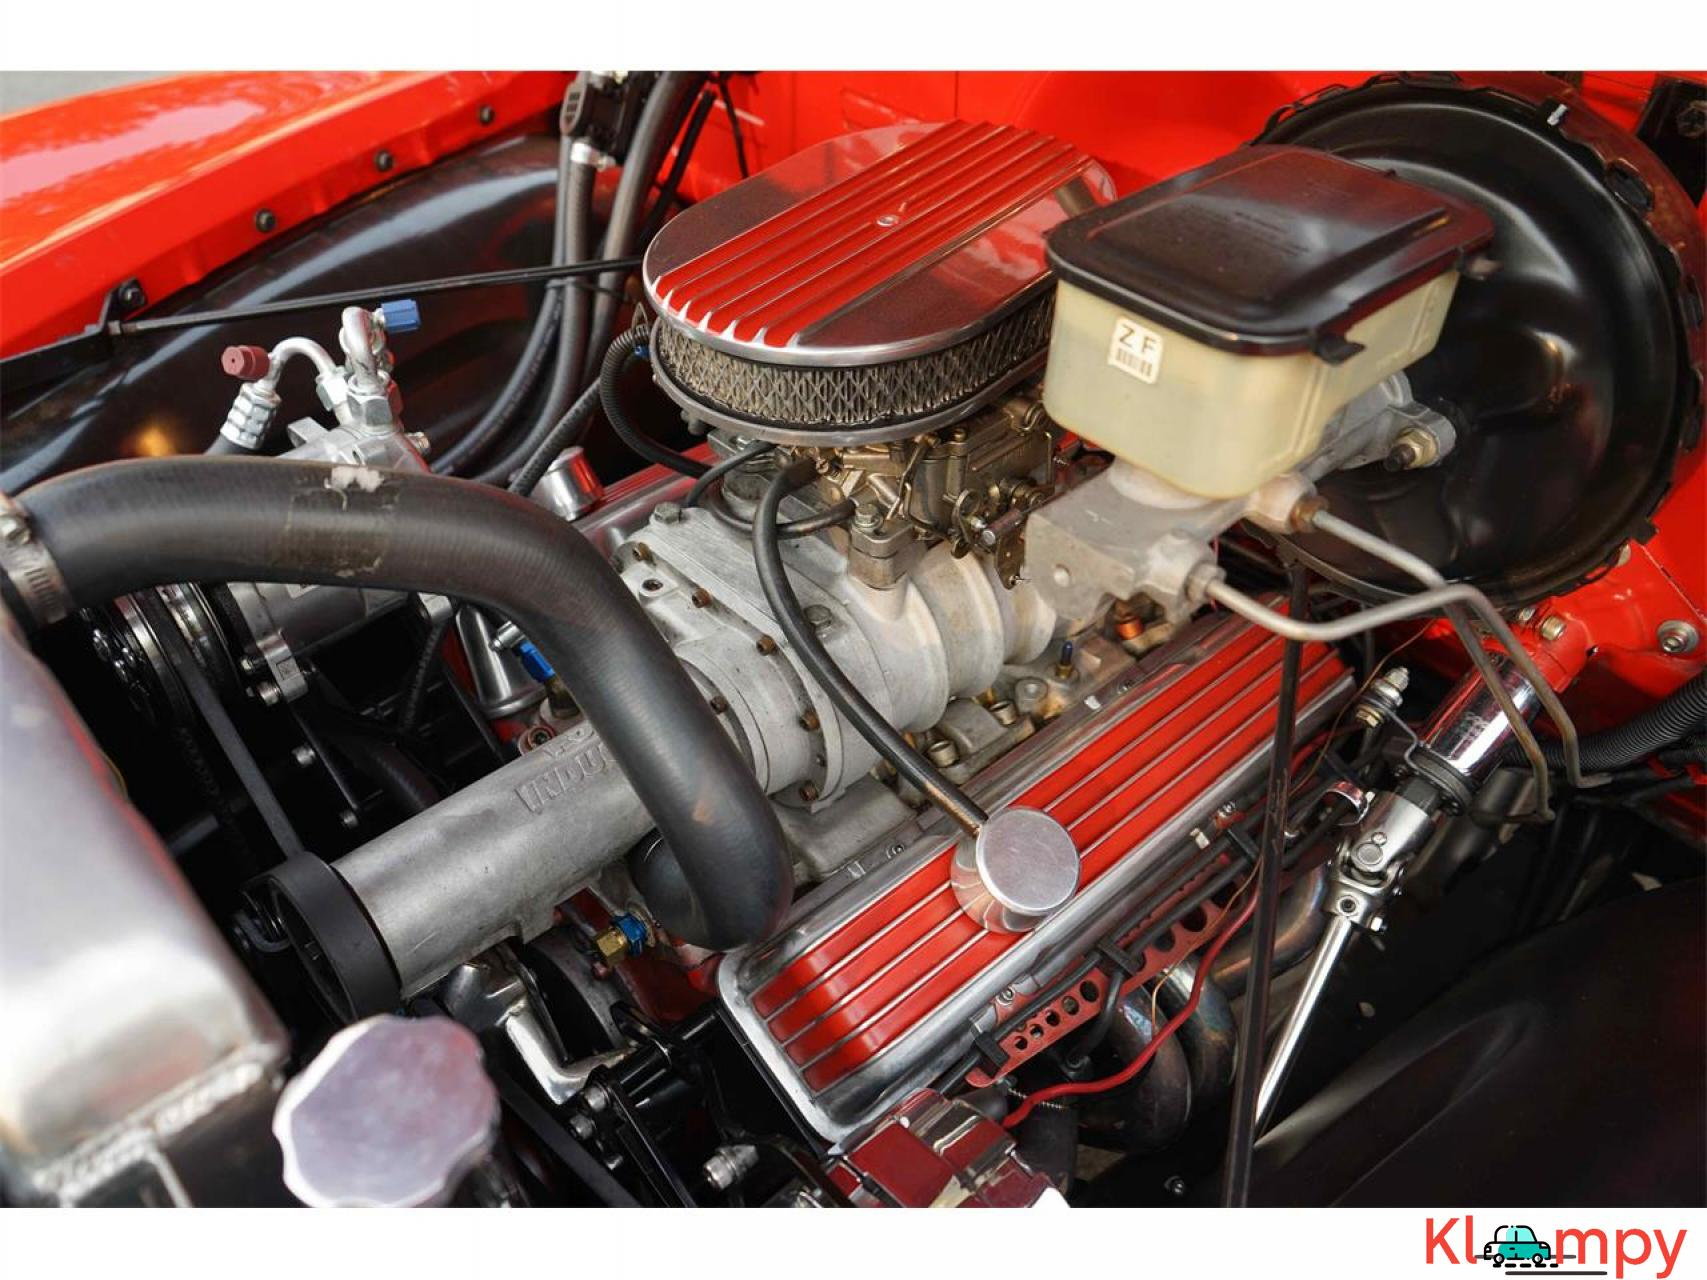 1951 Chevrolet 3100 350 V8 with a B&M Supercharger - 10/17